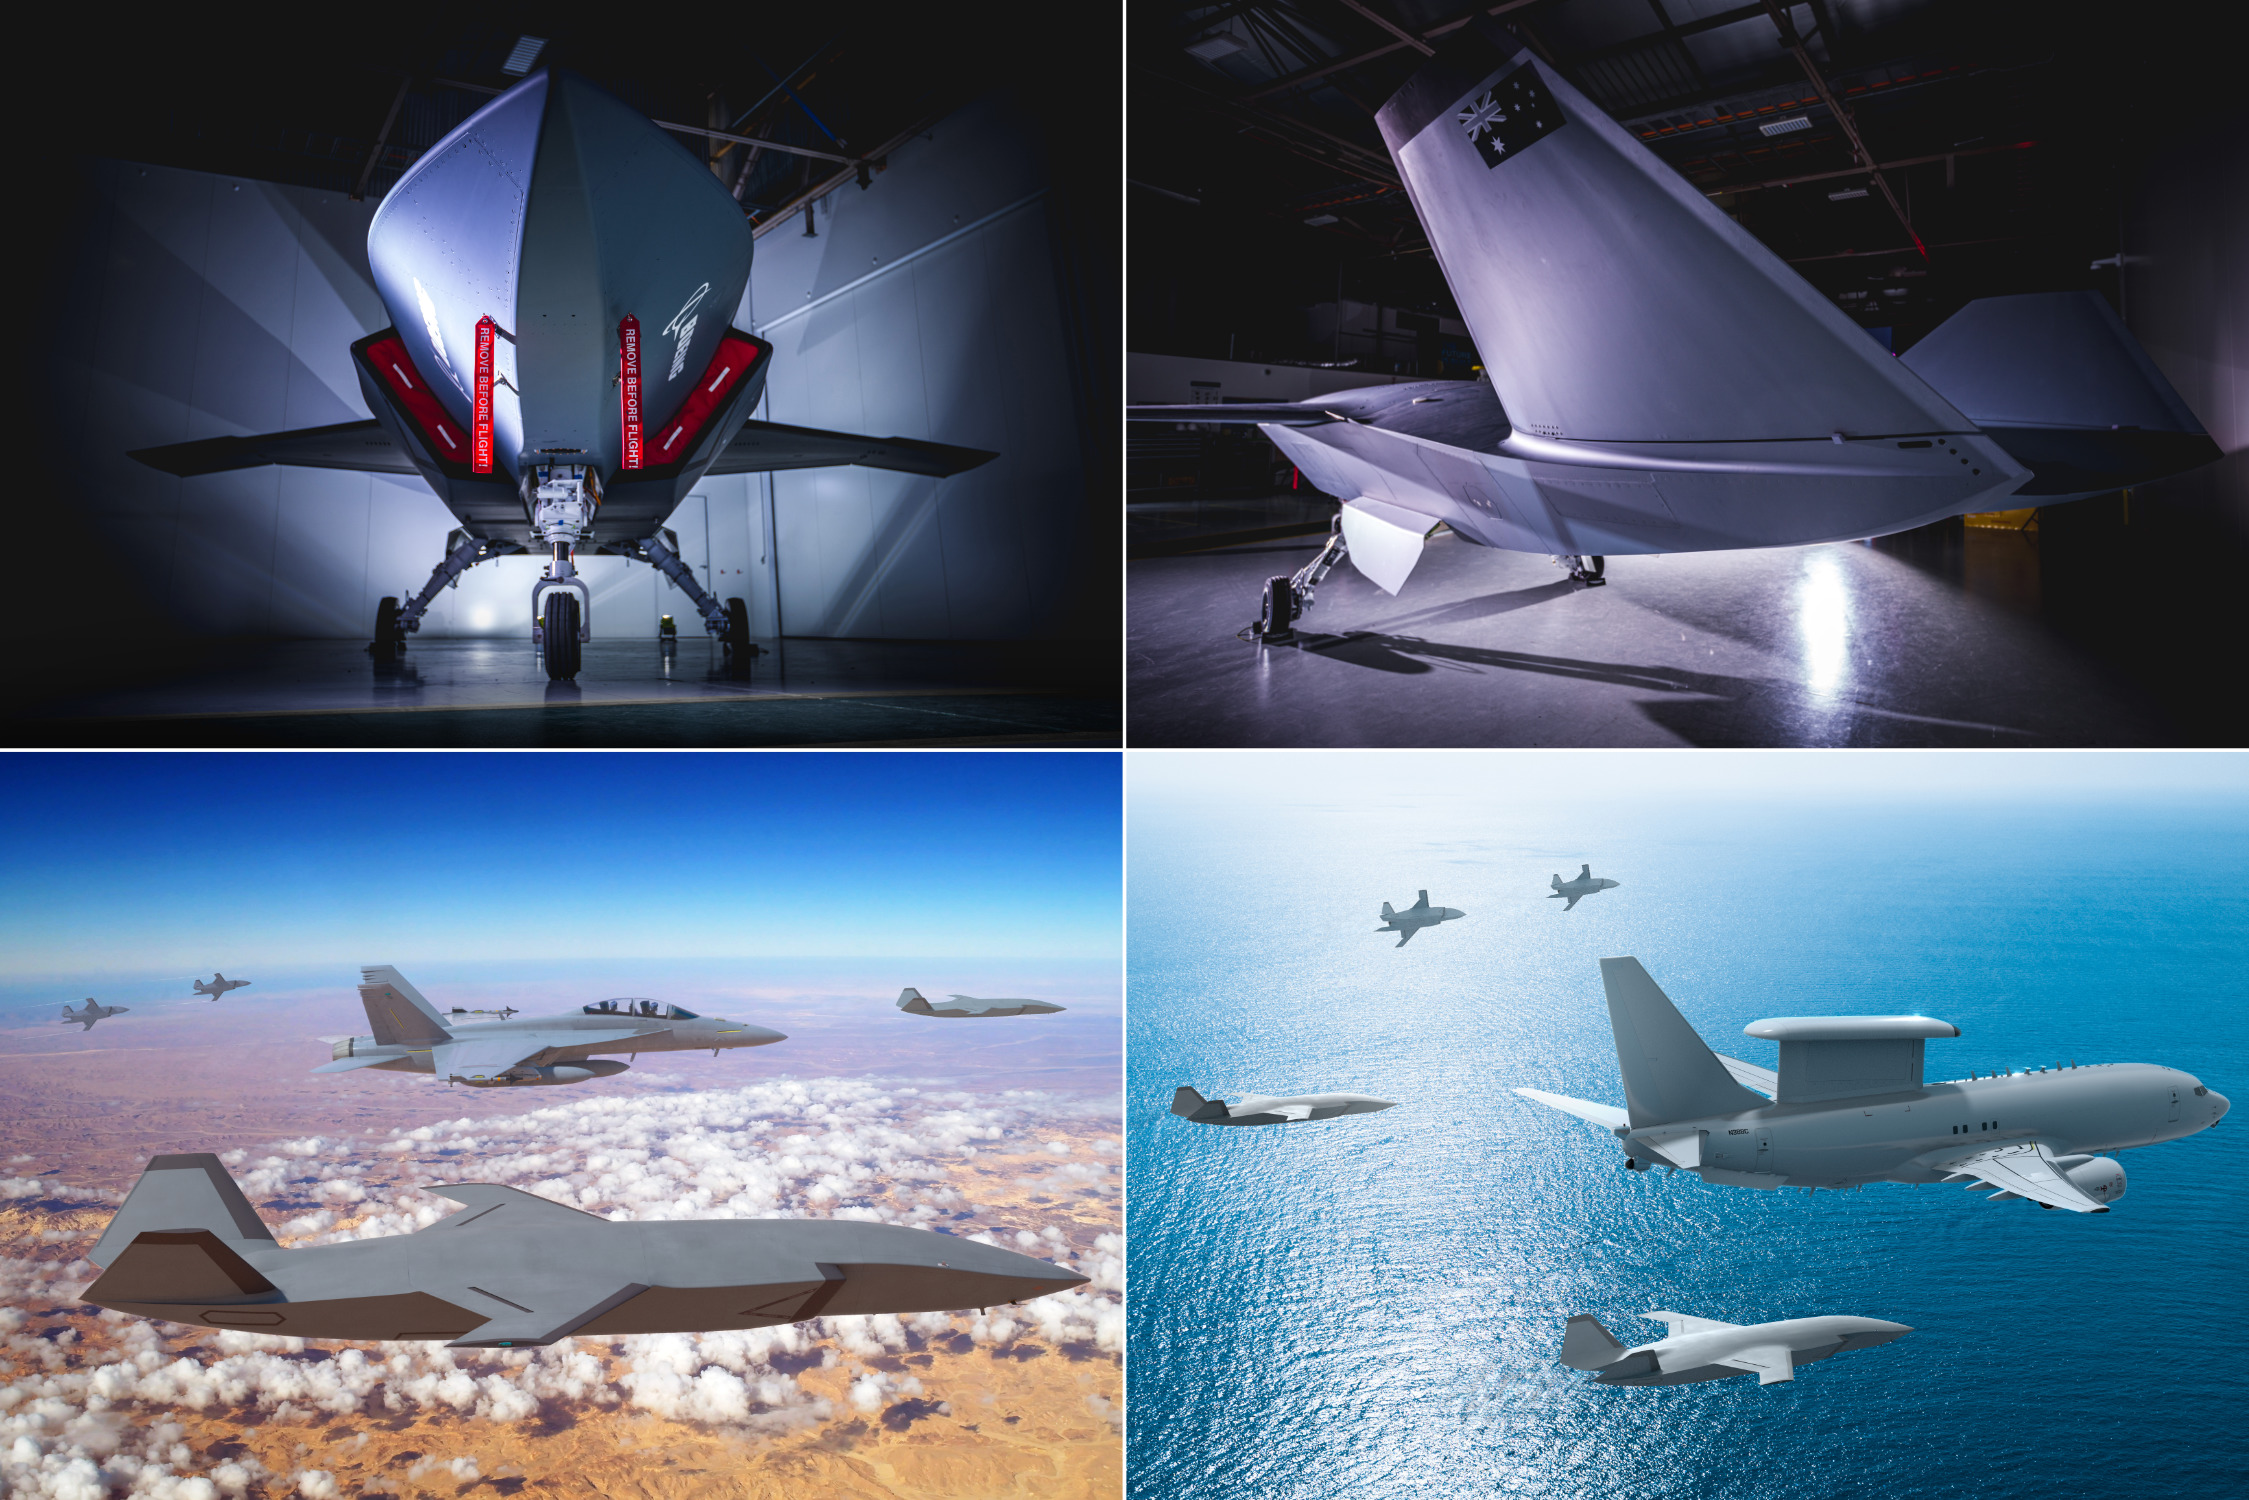 Boeing unveils Australia's first 'Loyal Wingman' military drone